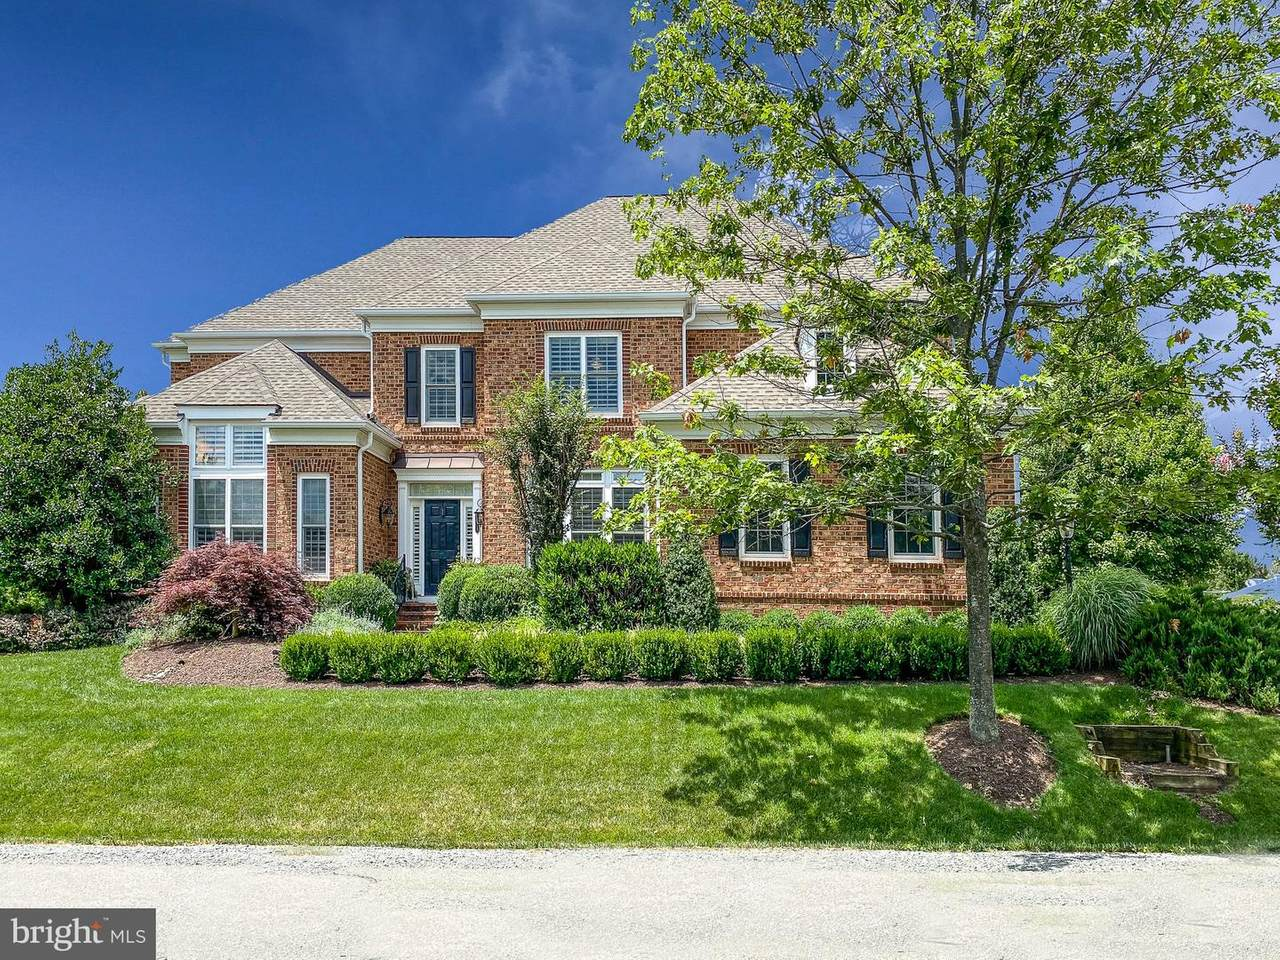 21079 Mill Branch Drive - Photo 1